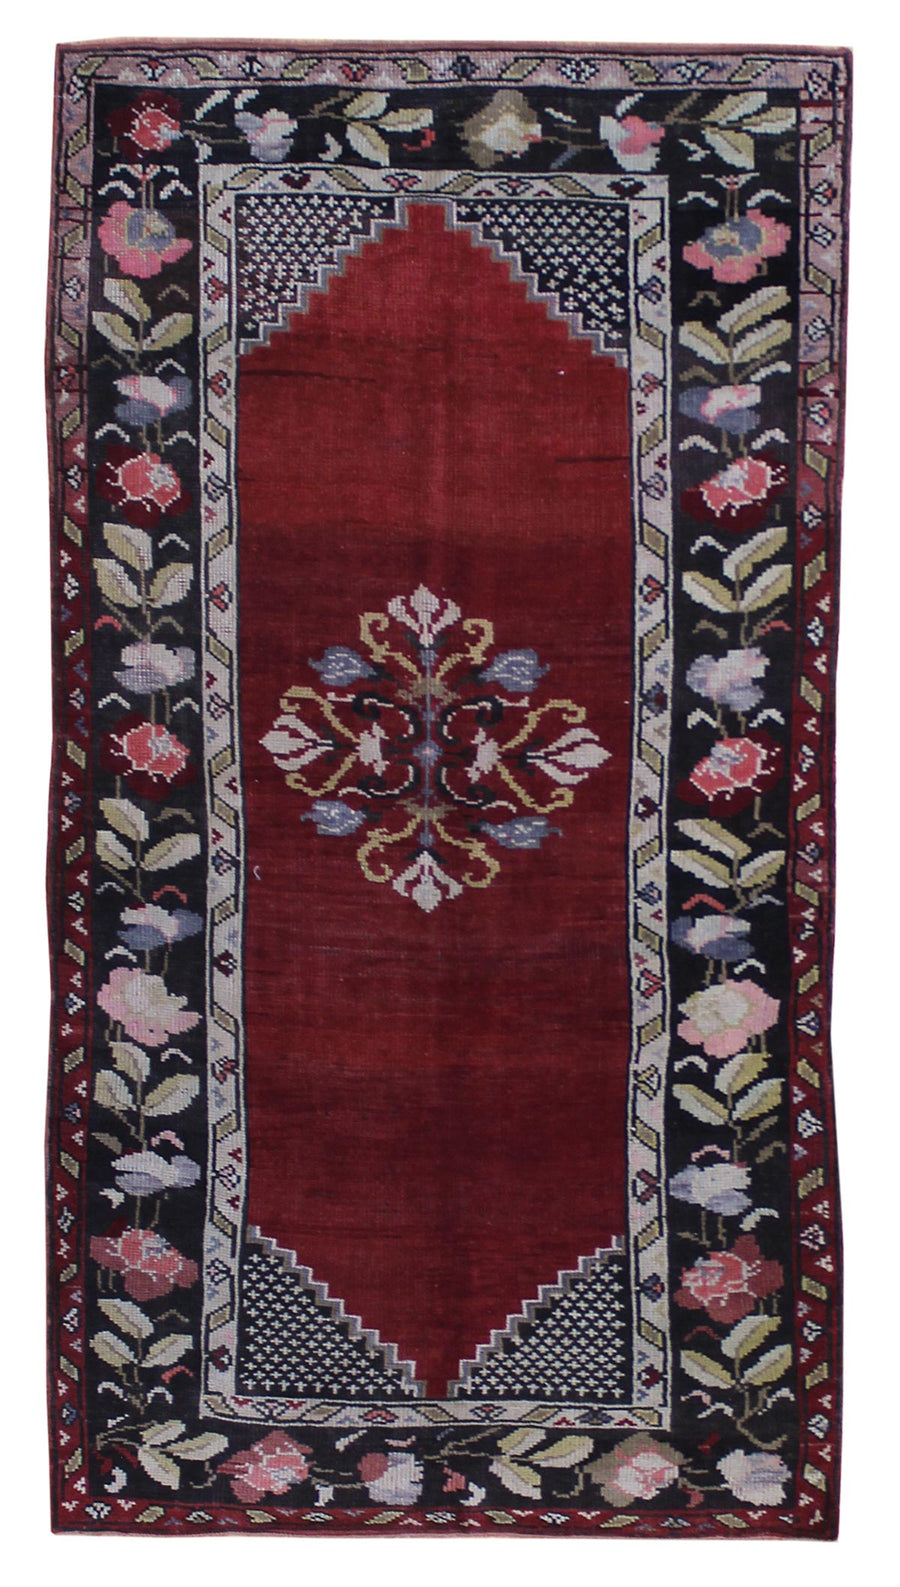 TASPINAR HANDKNOTTED RUG, J44691